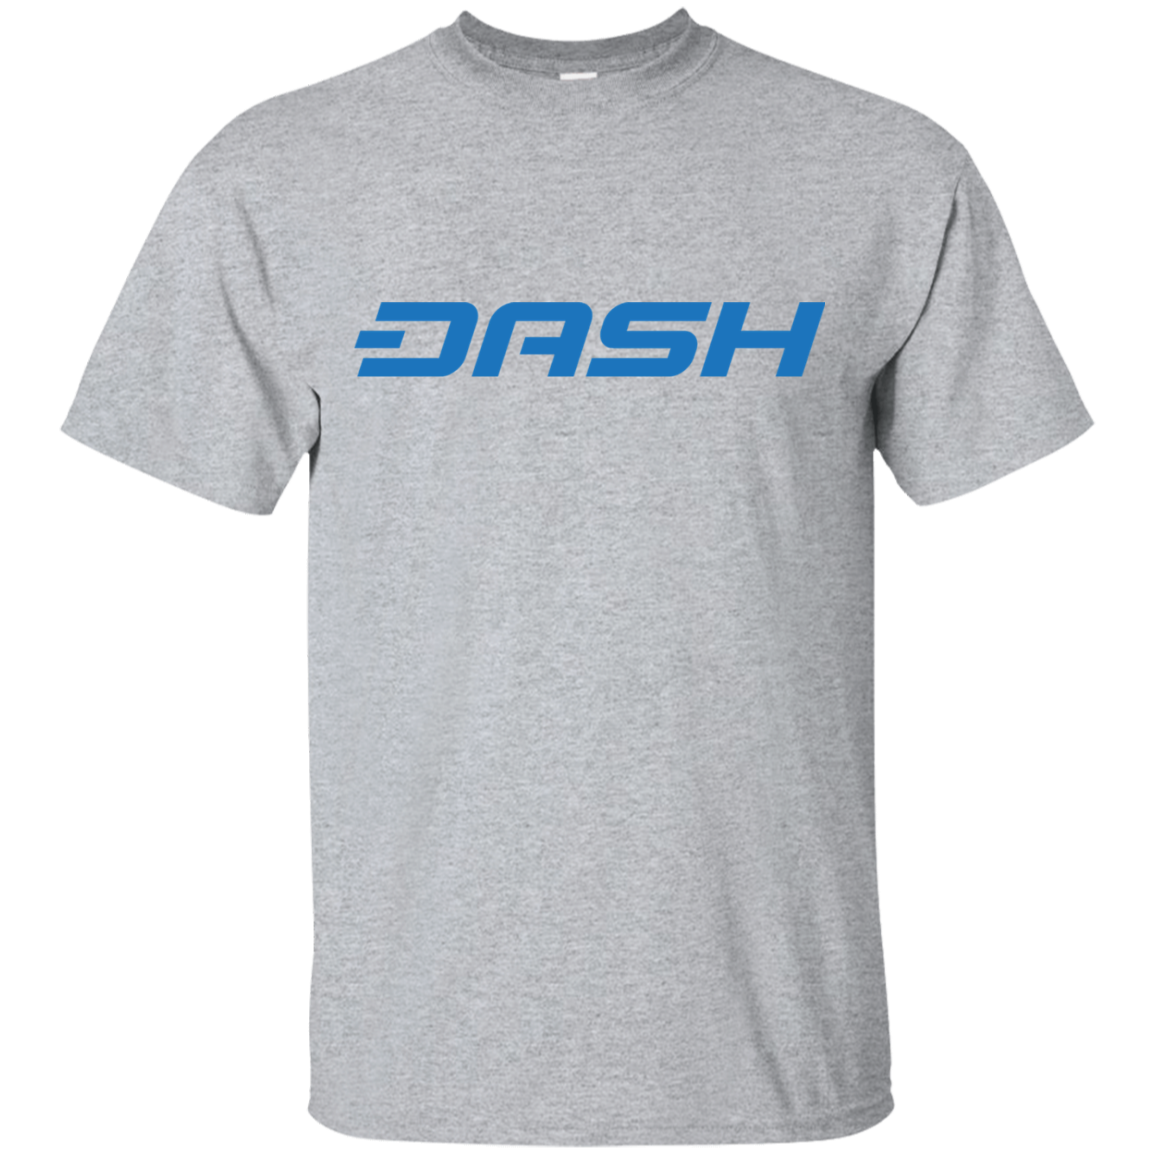 0c8dd2a70 CryptoCurrency T-Shirt - G200 Gildan Ultra Cotton T-Shirt   Dash Dallas  Cowboys